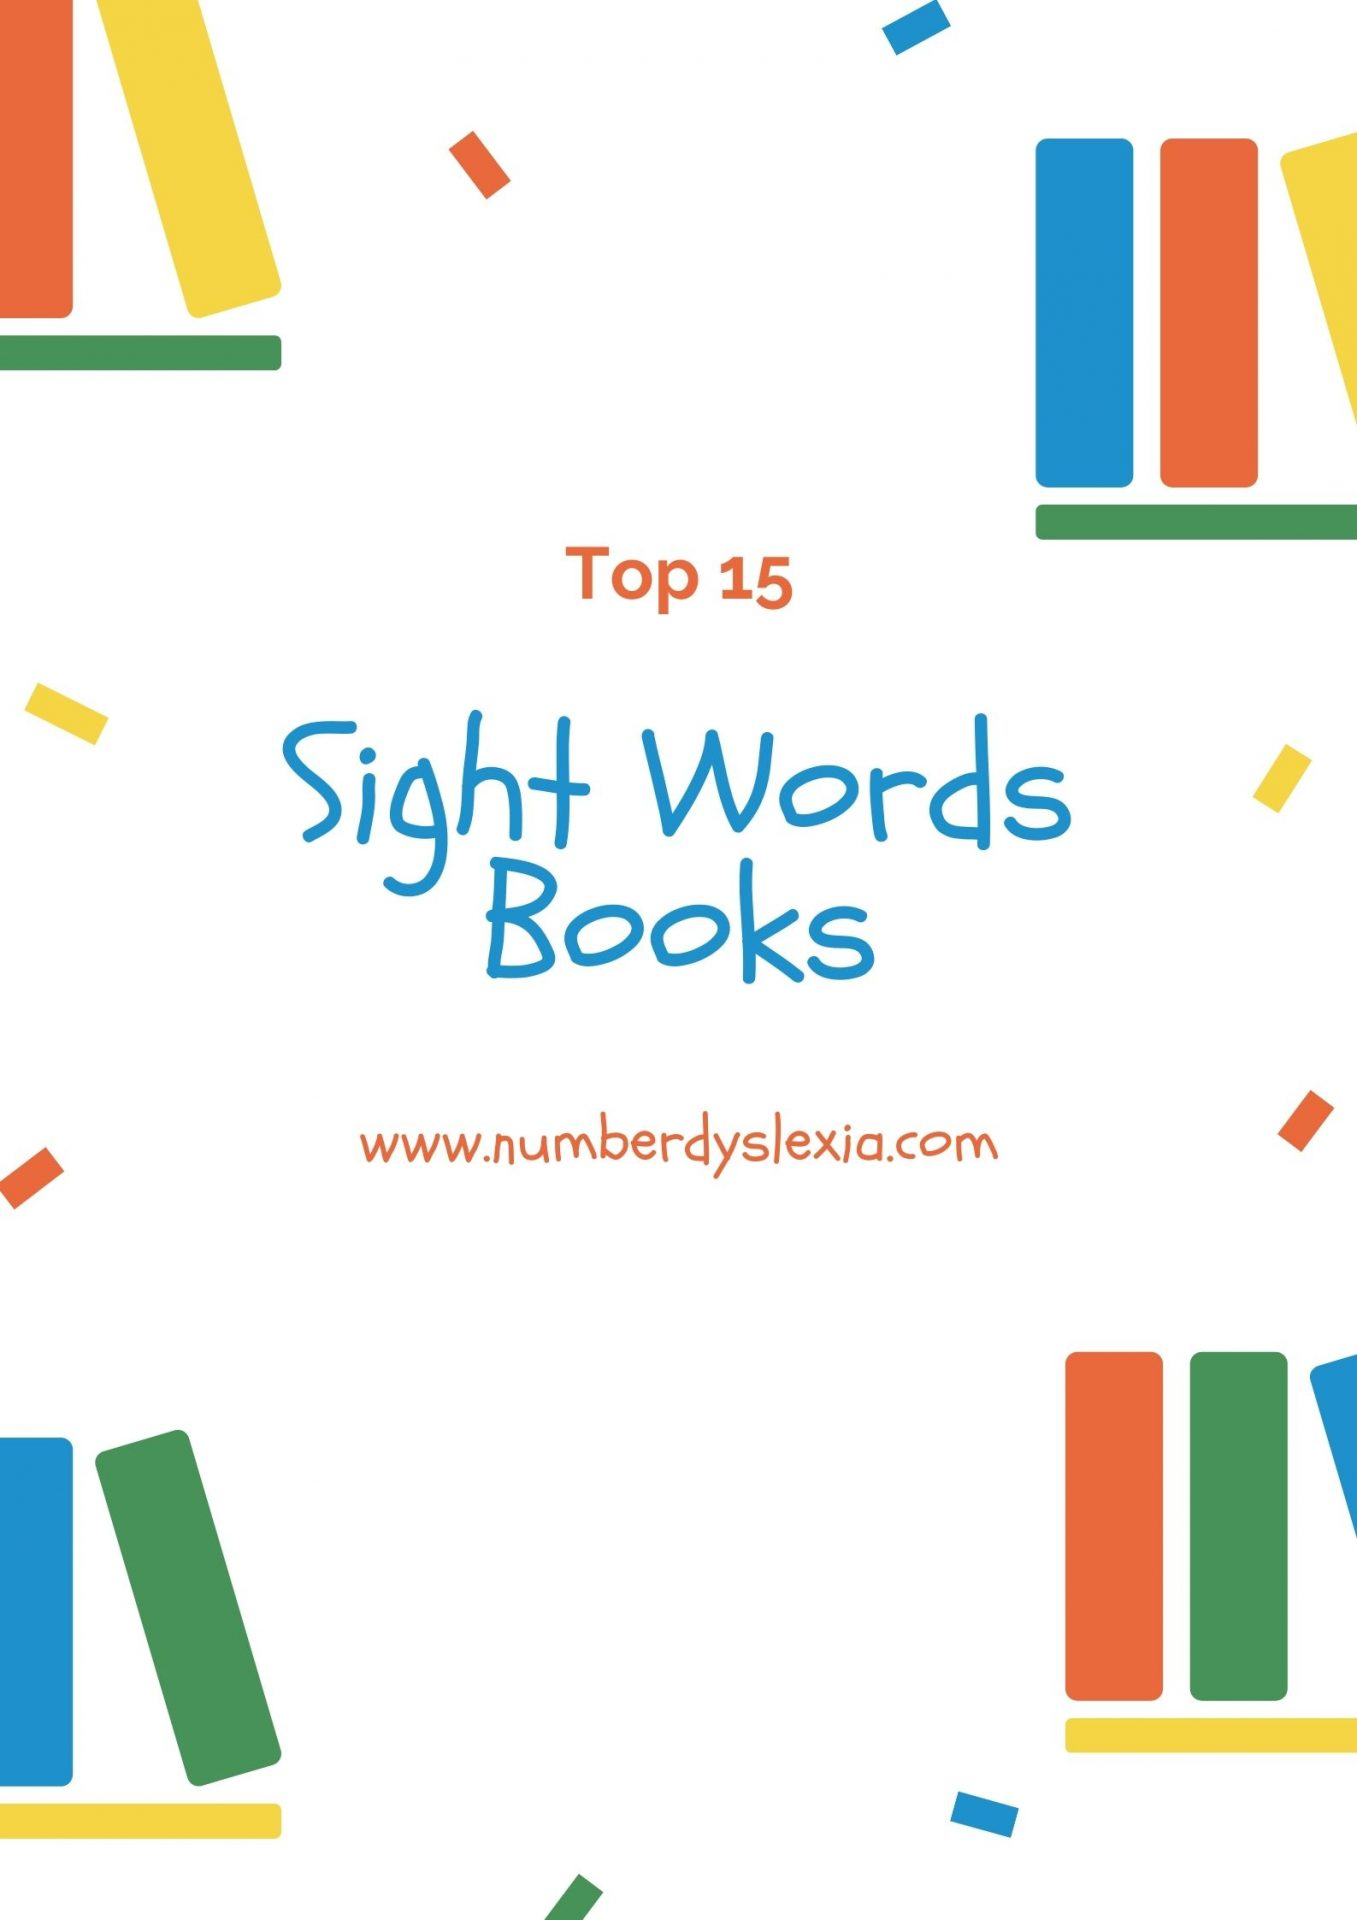 List of top 15 books for learning sight words